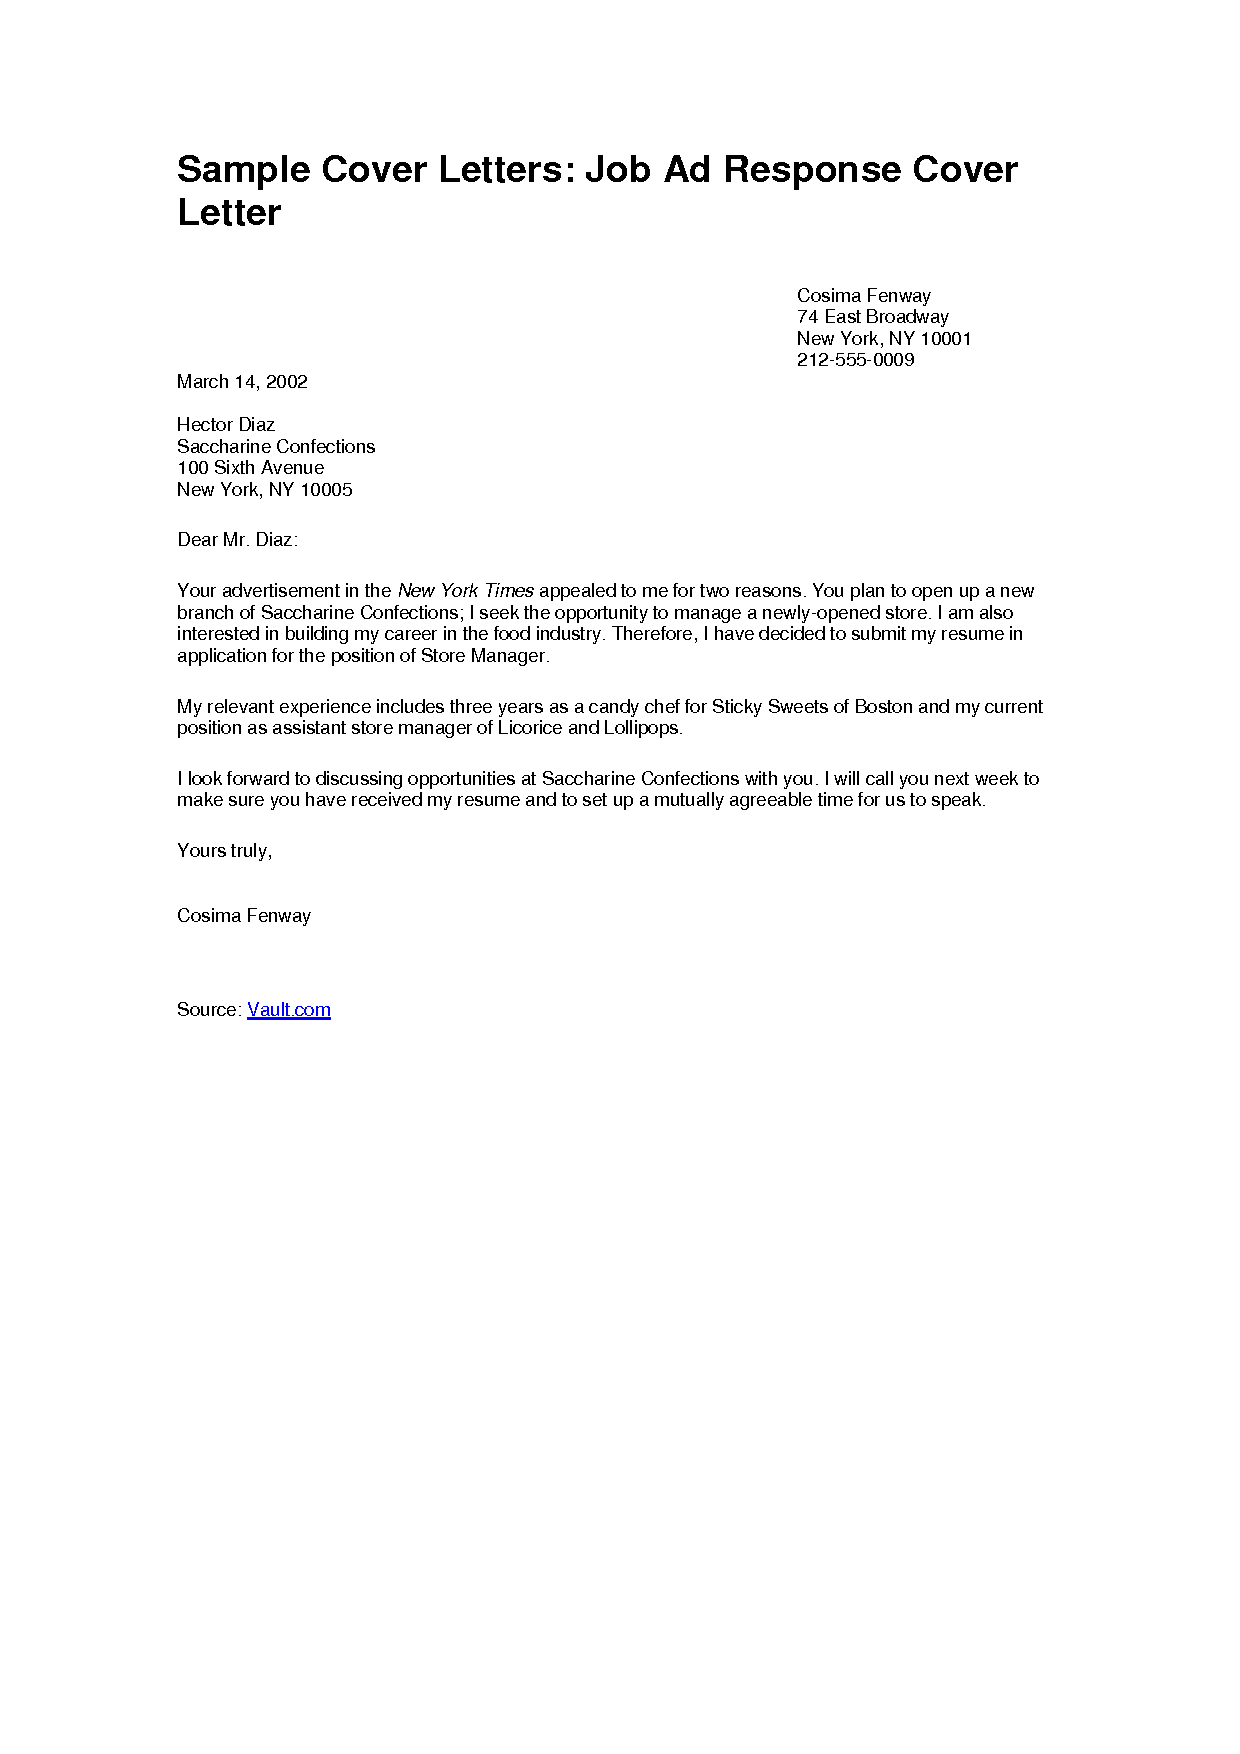 Sample cover letter for applying a job for Cover letter for company not hiring